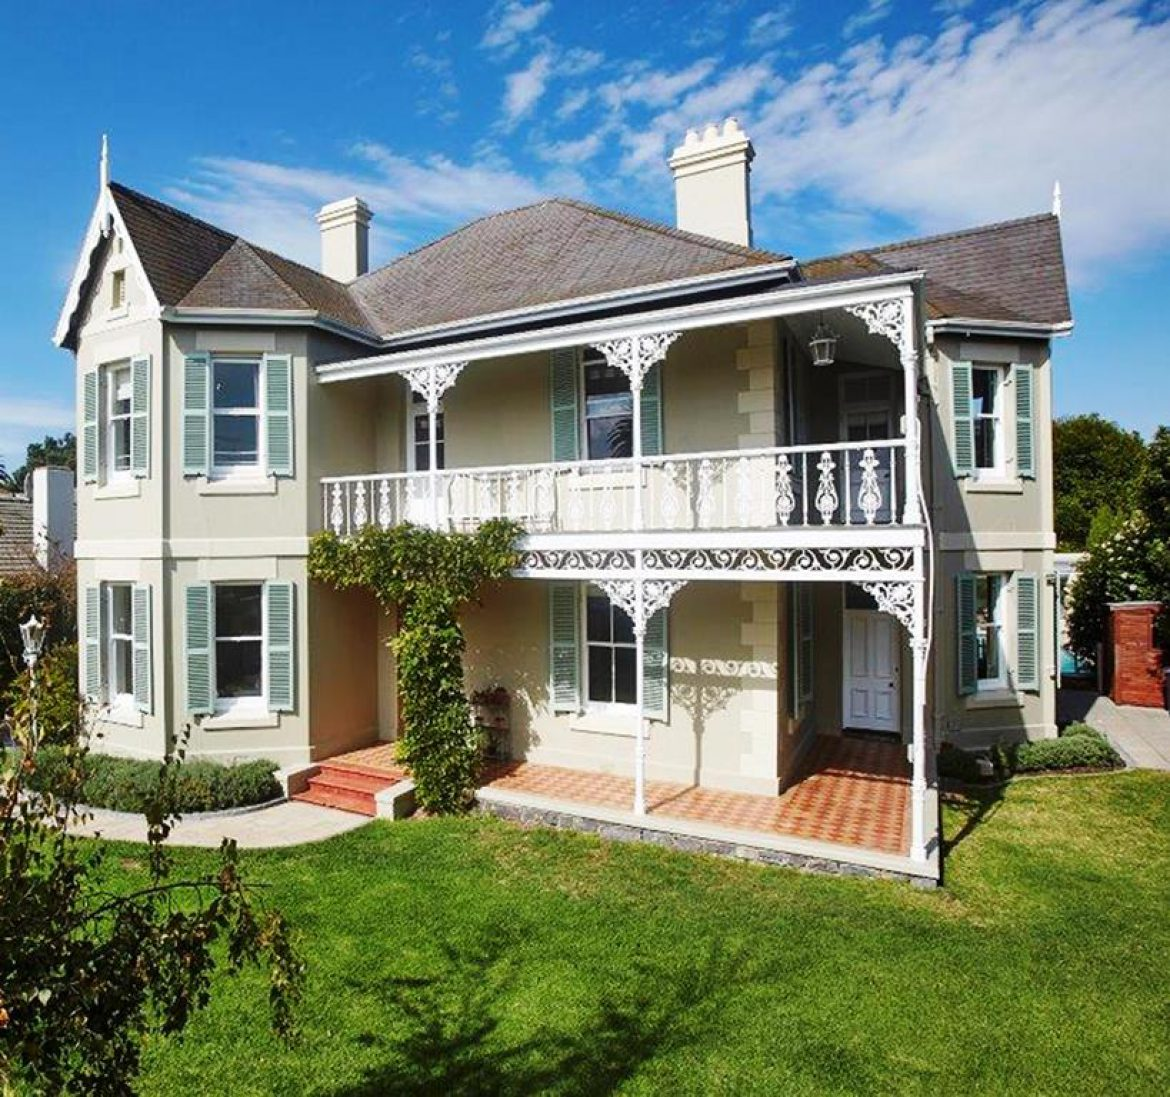 Buyers Vie for Rondebosch's Heritage Homes: Sotheby's on Property24